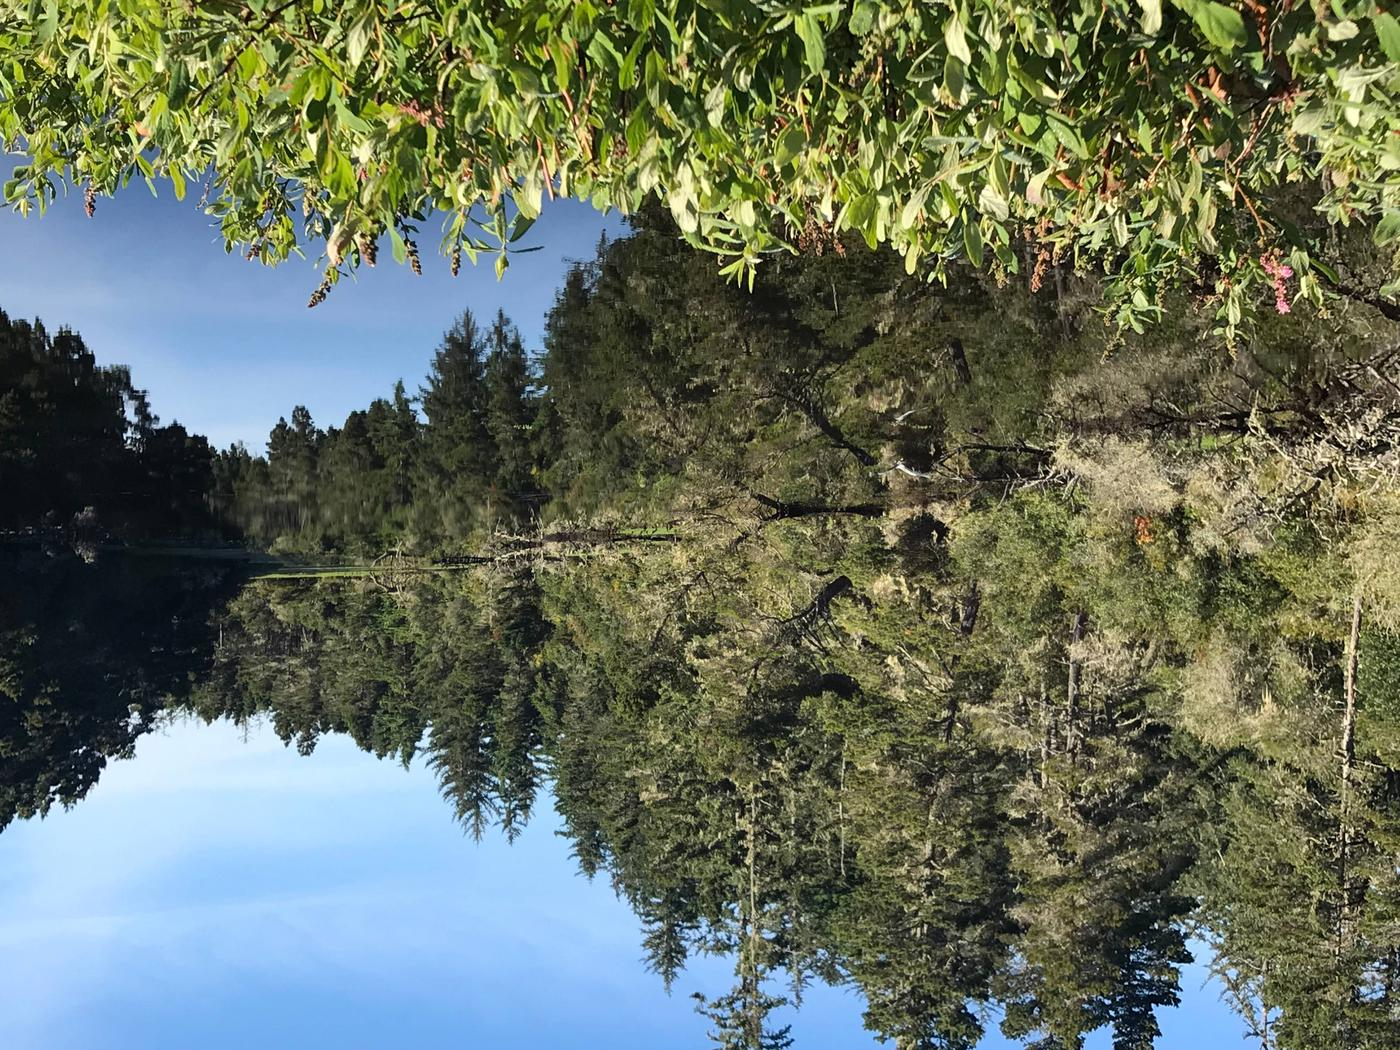 Conifer trees reflected on still lake under blue sky.LAGOON CAMPGROUND